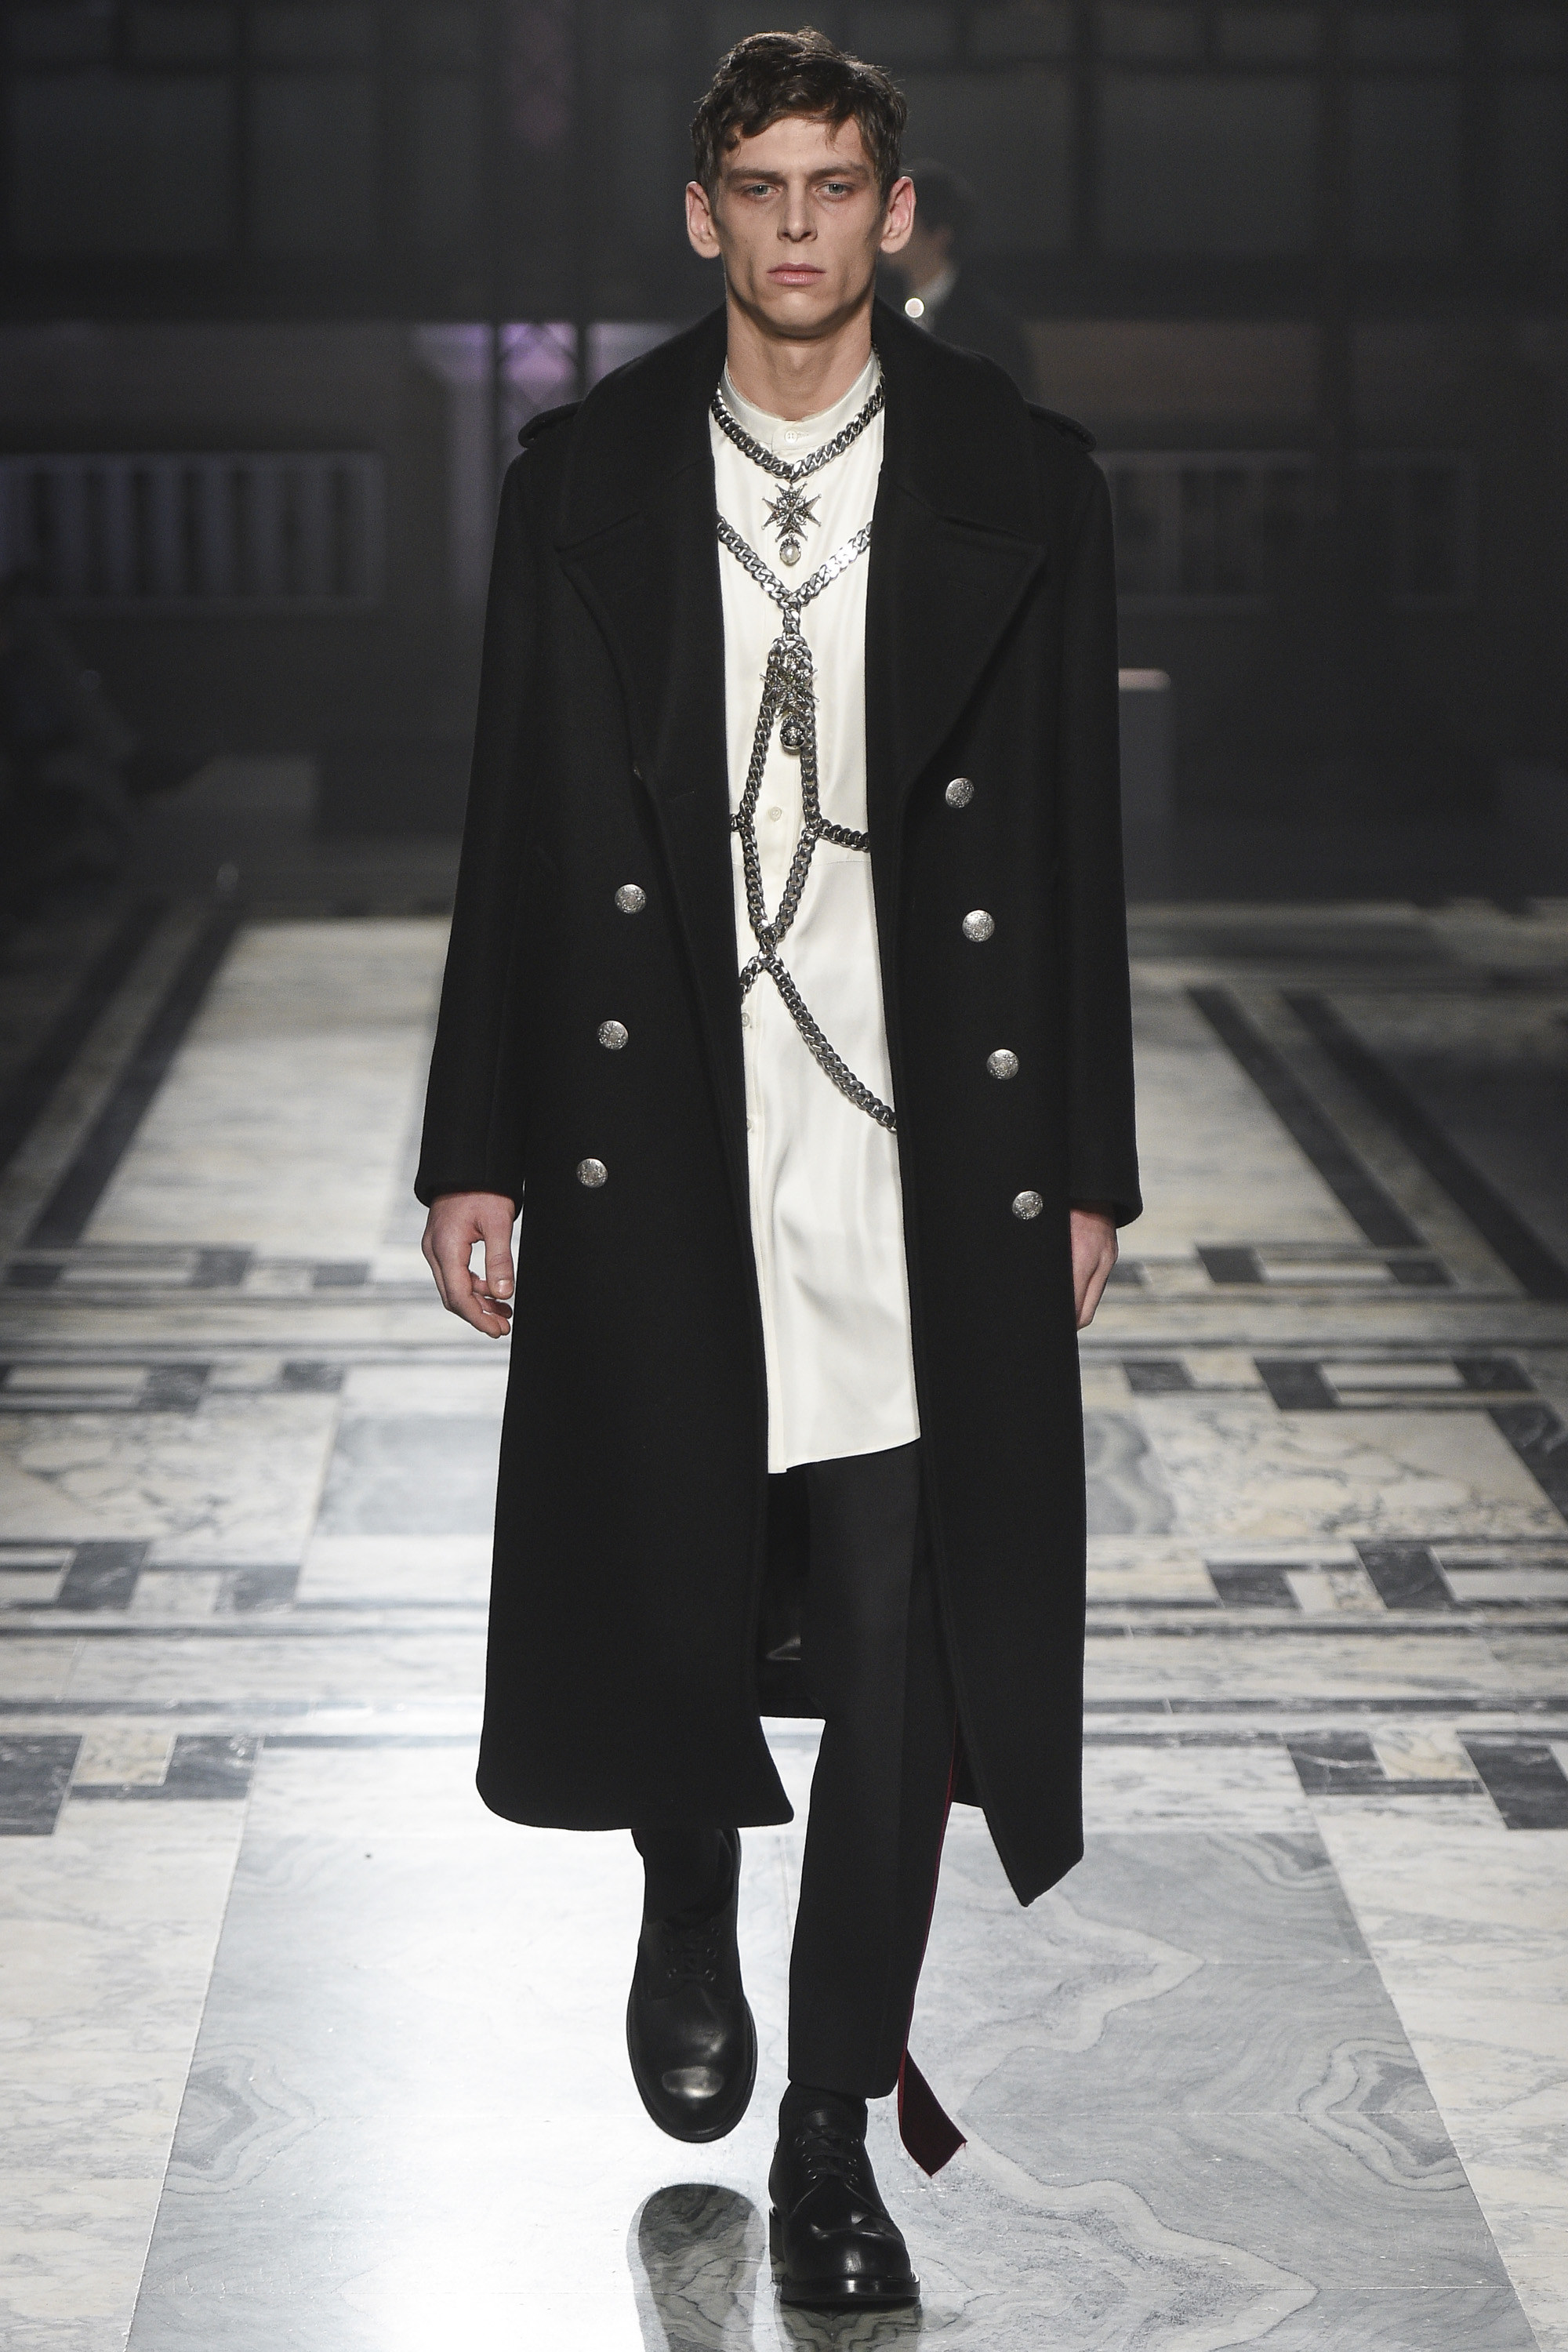 Alexander McQueen Menswear FW 2016 London